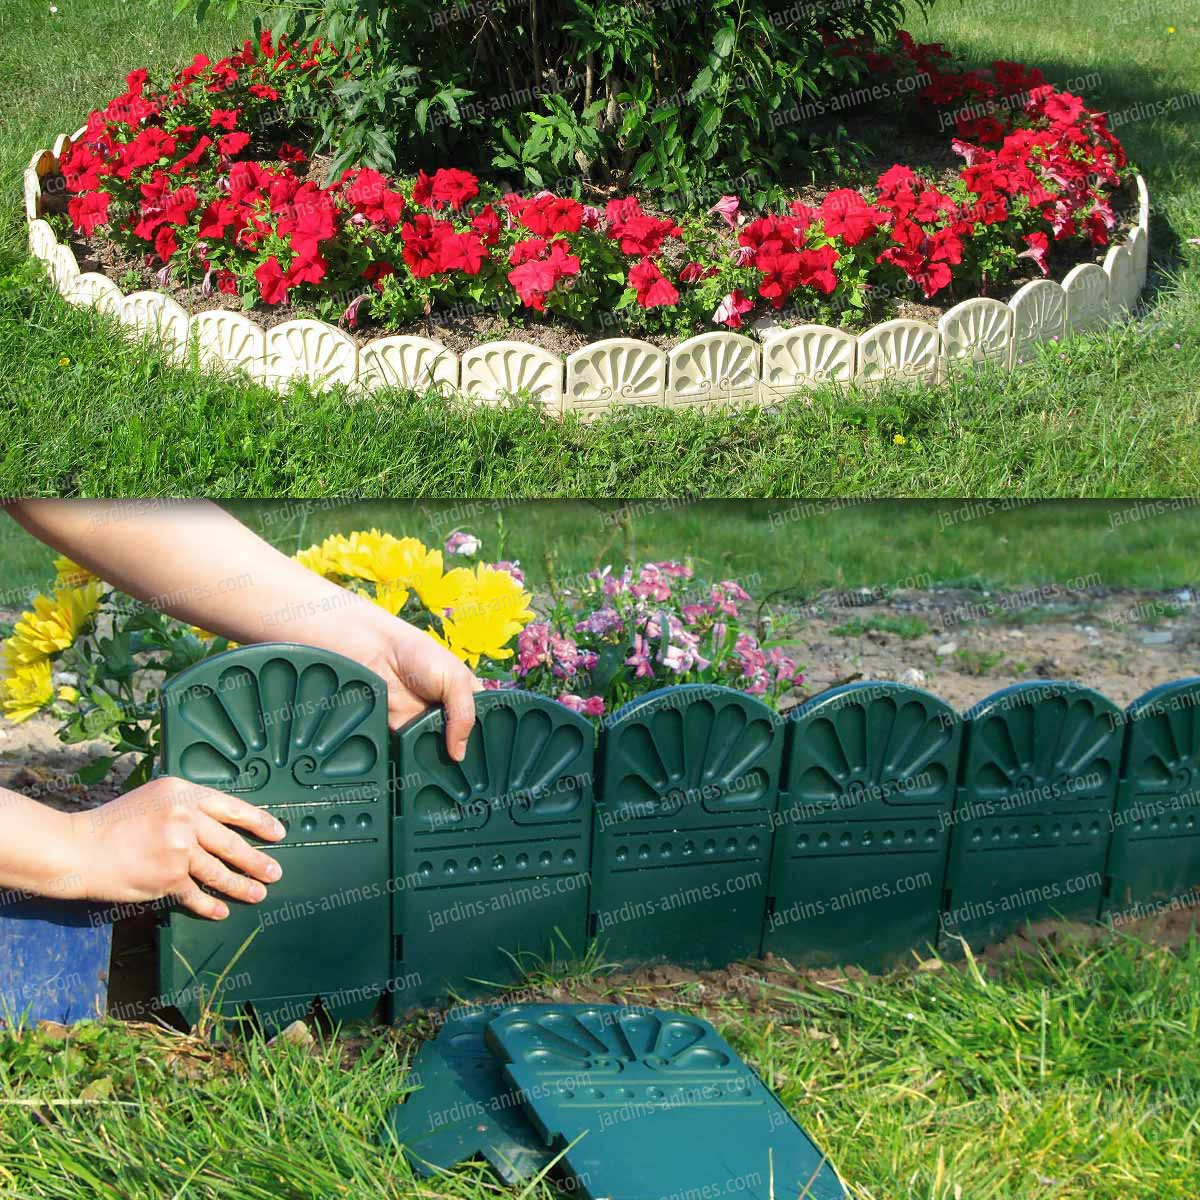 Bordures d coratives de jardin en plastique bordurette gazon for Bordure de jardin en pierre pas cher